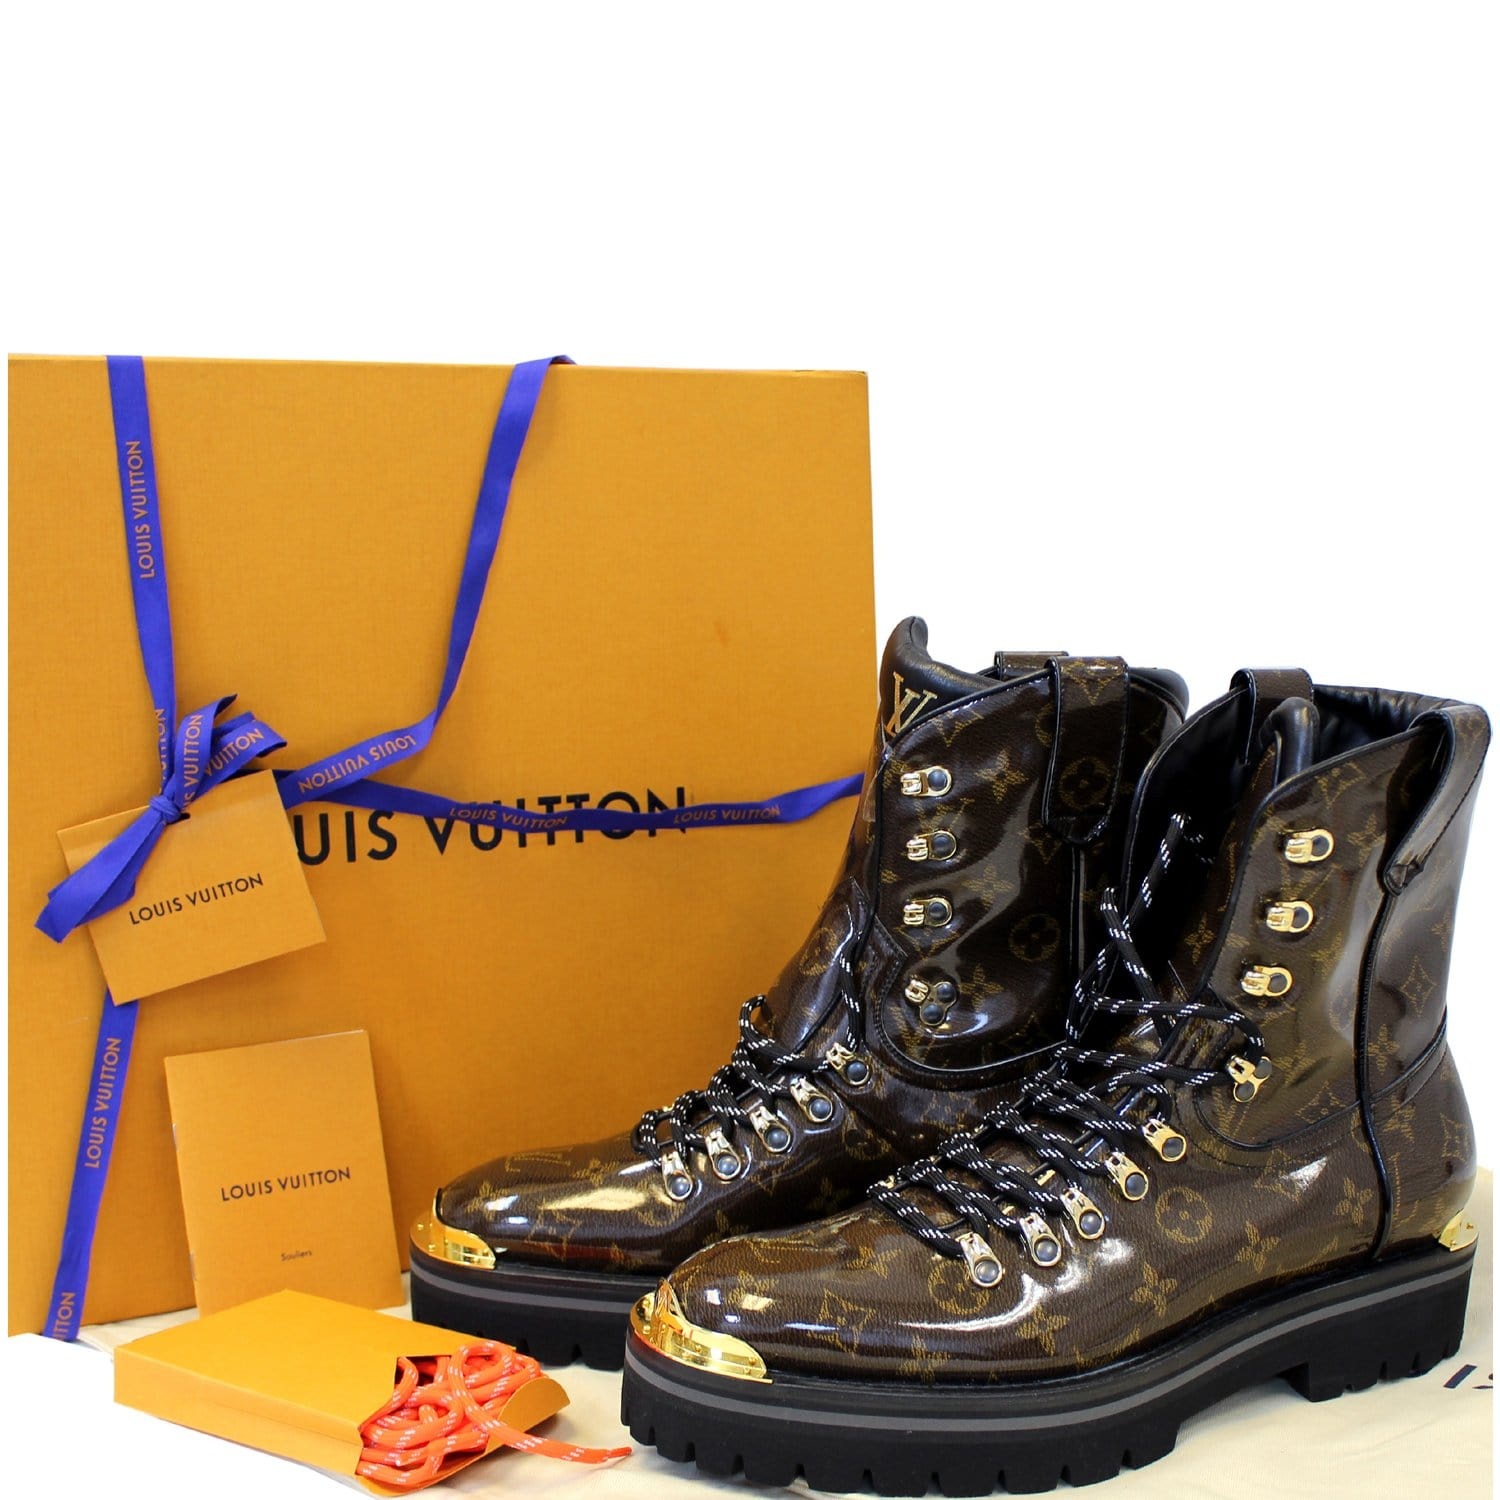 LOUIS VUITTON Outland Ankle Boot